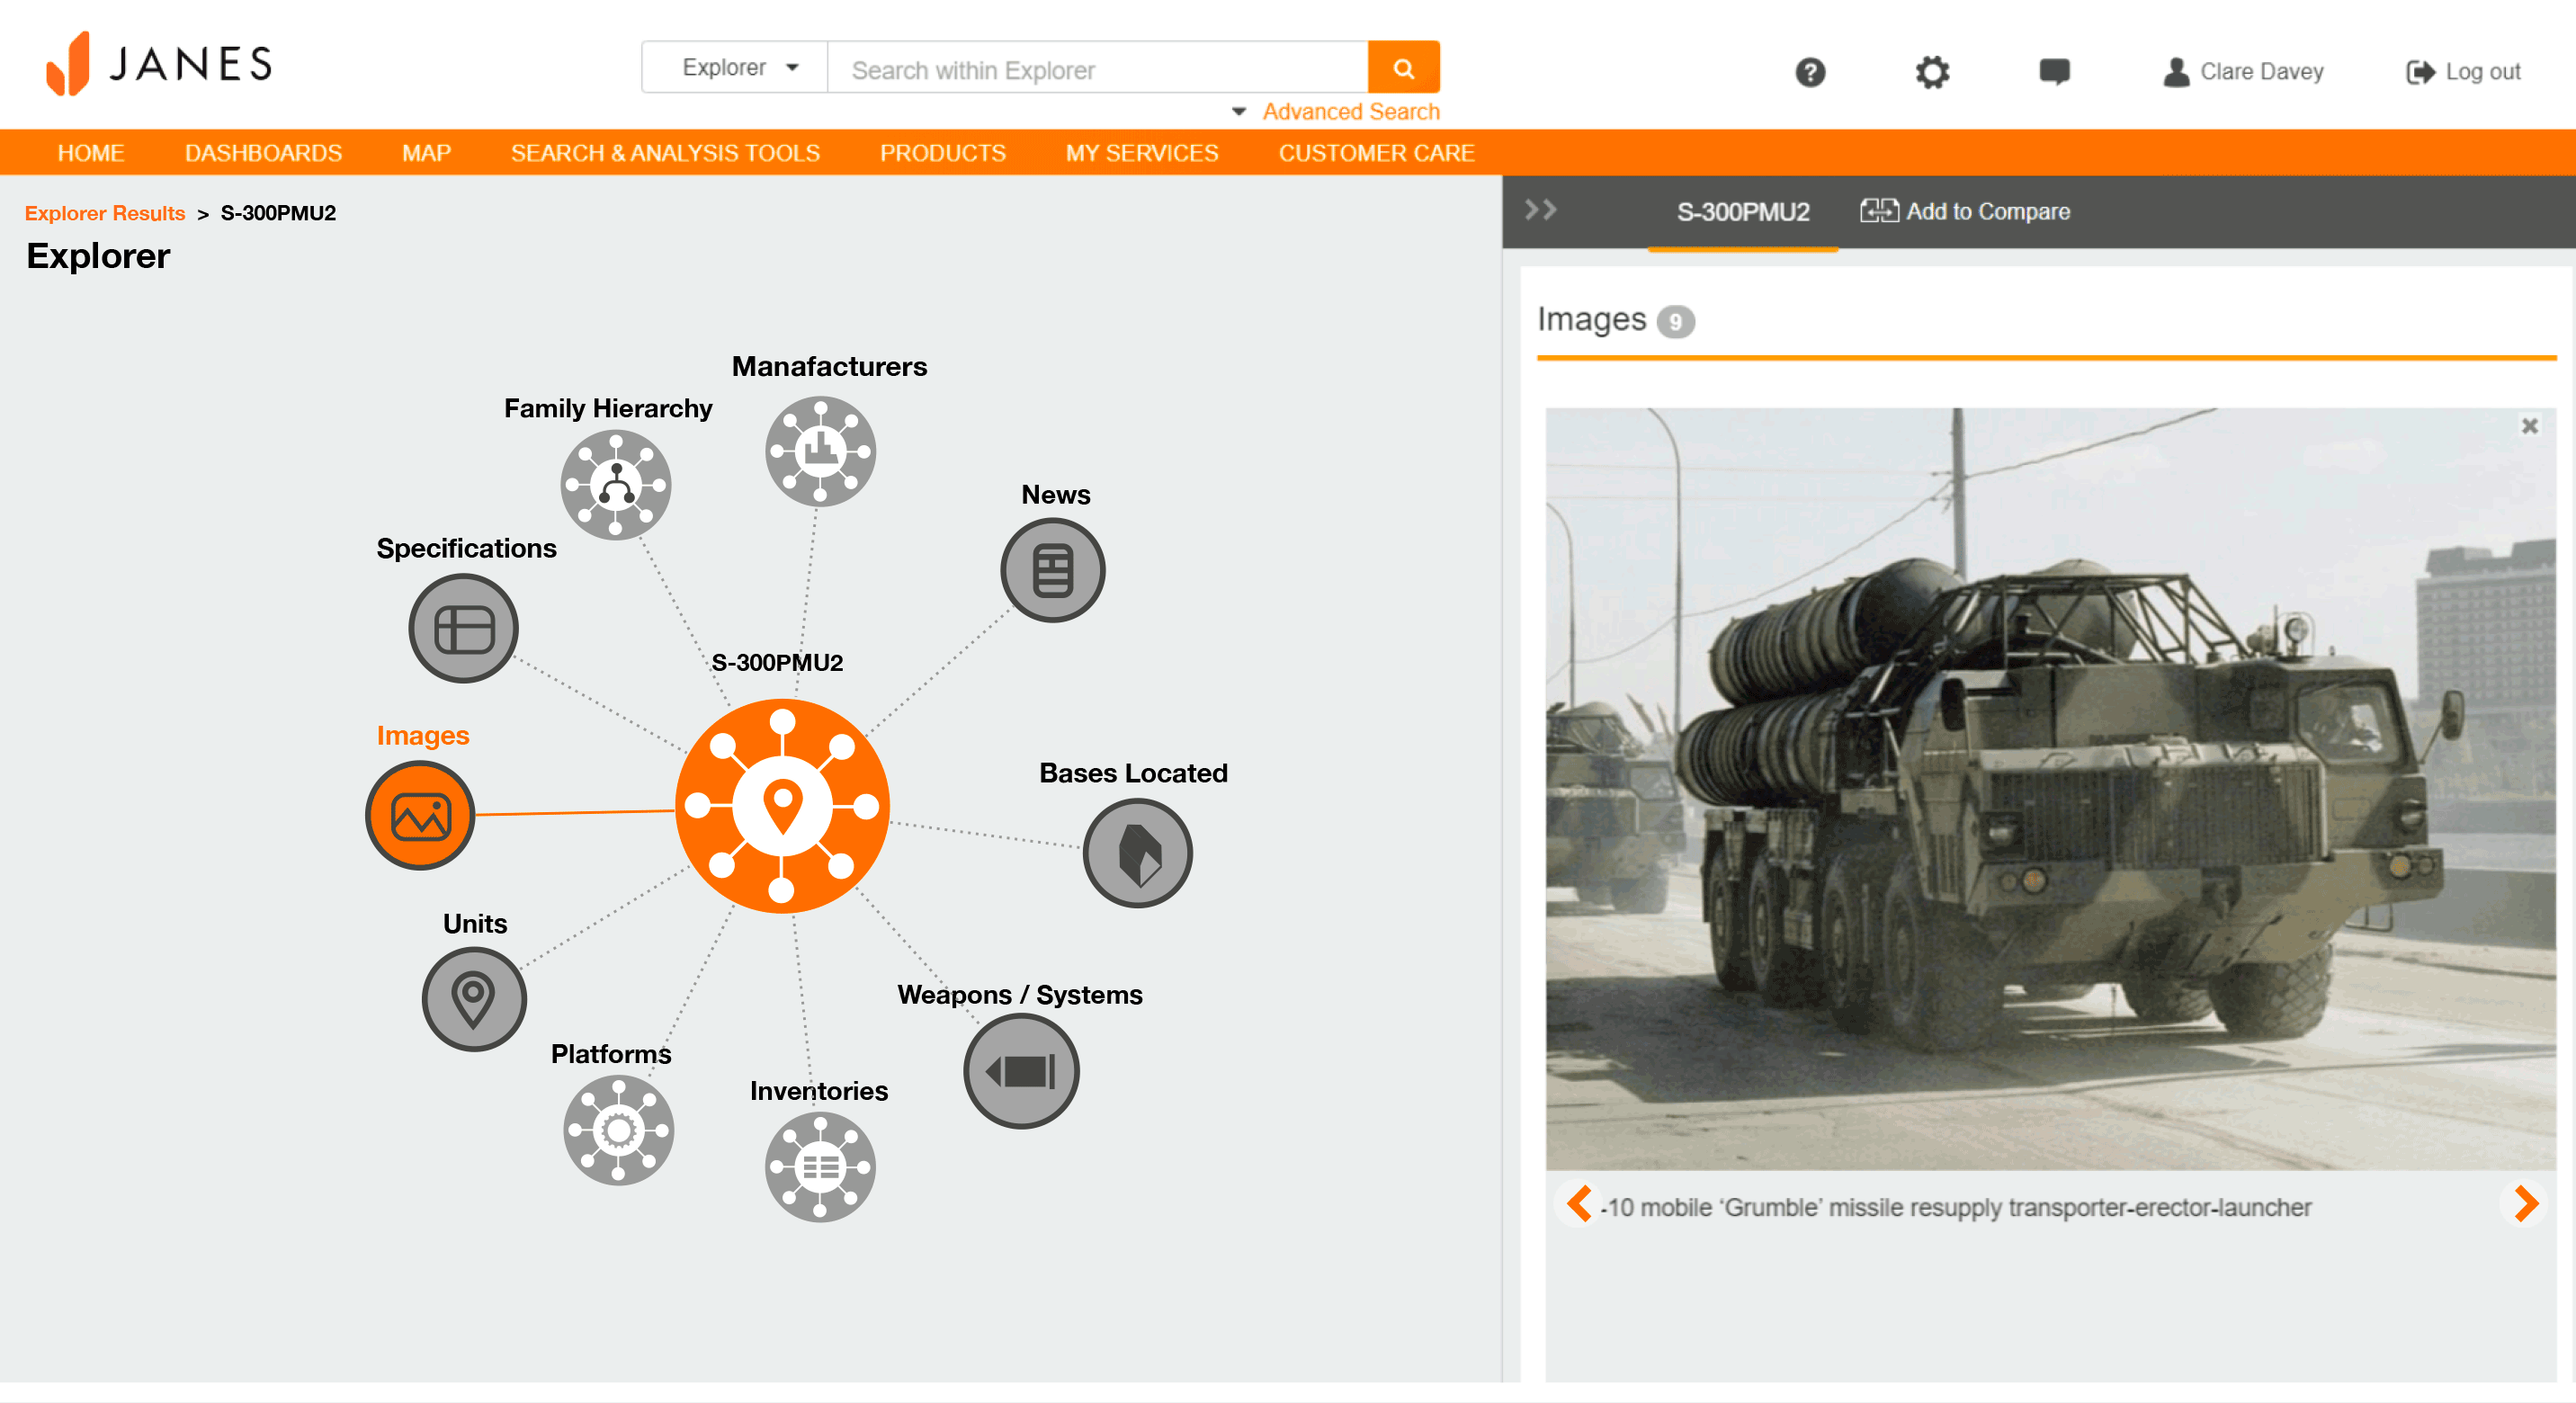 Image of specifications S-300P